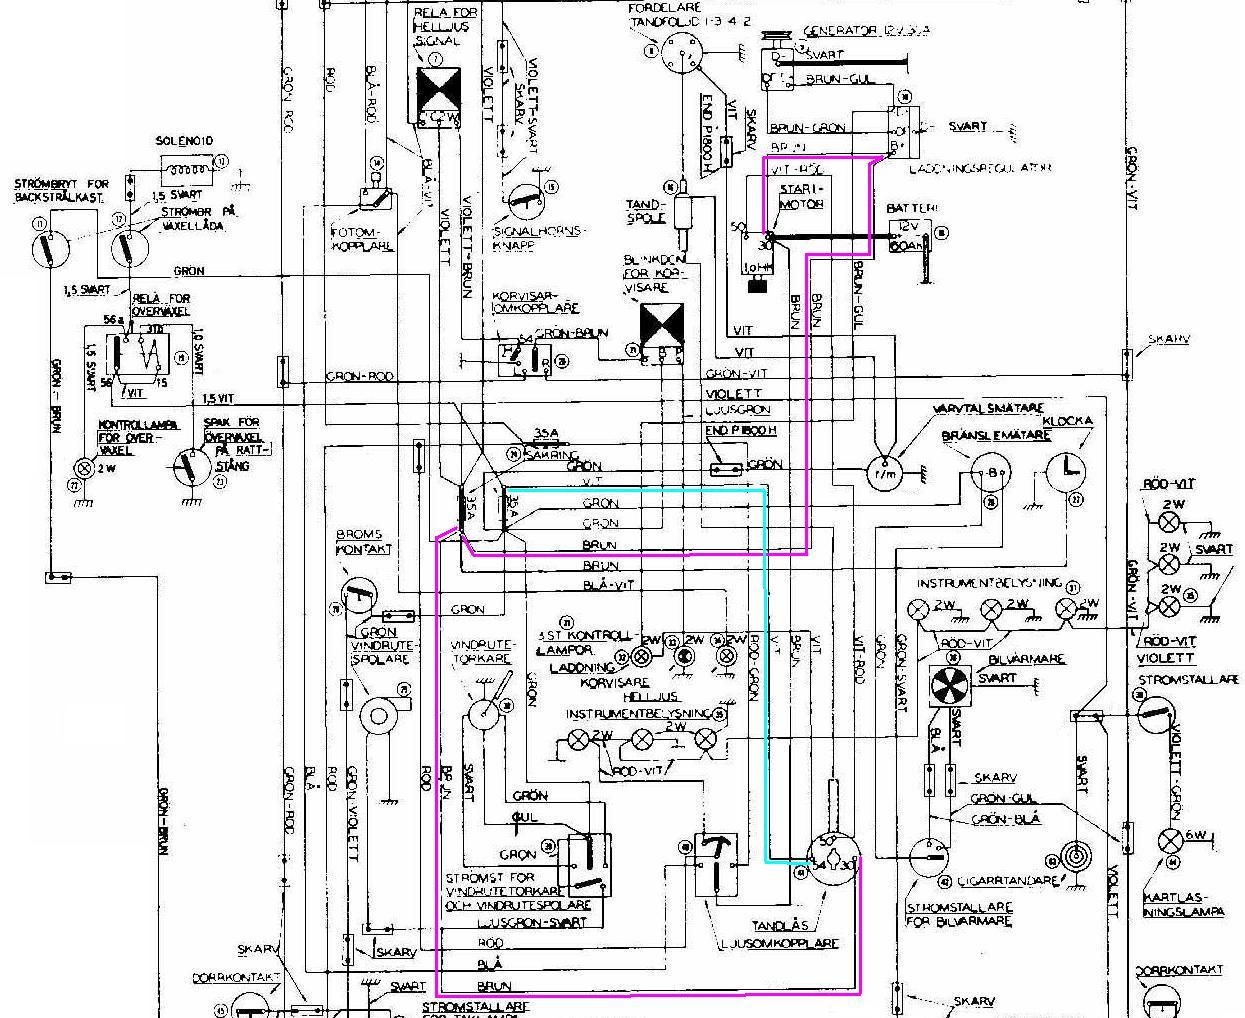 hight resolution of 1800 ignition wiring swedish vs british design basic electrical schematic diagrams wiring diagram symbols